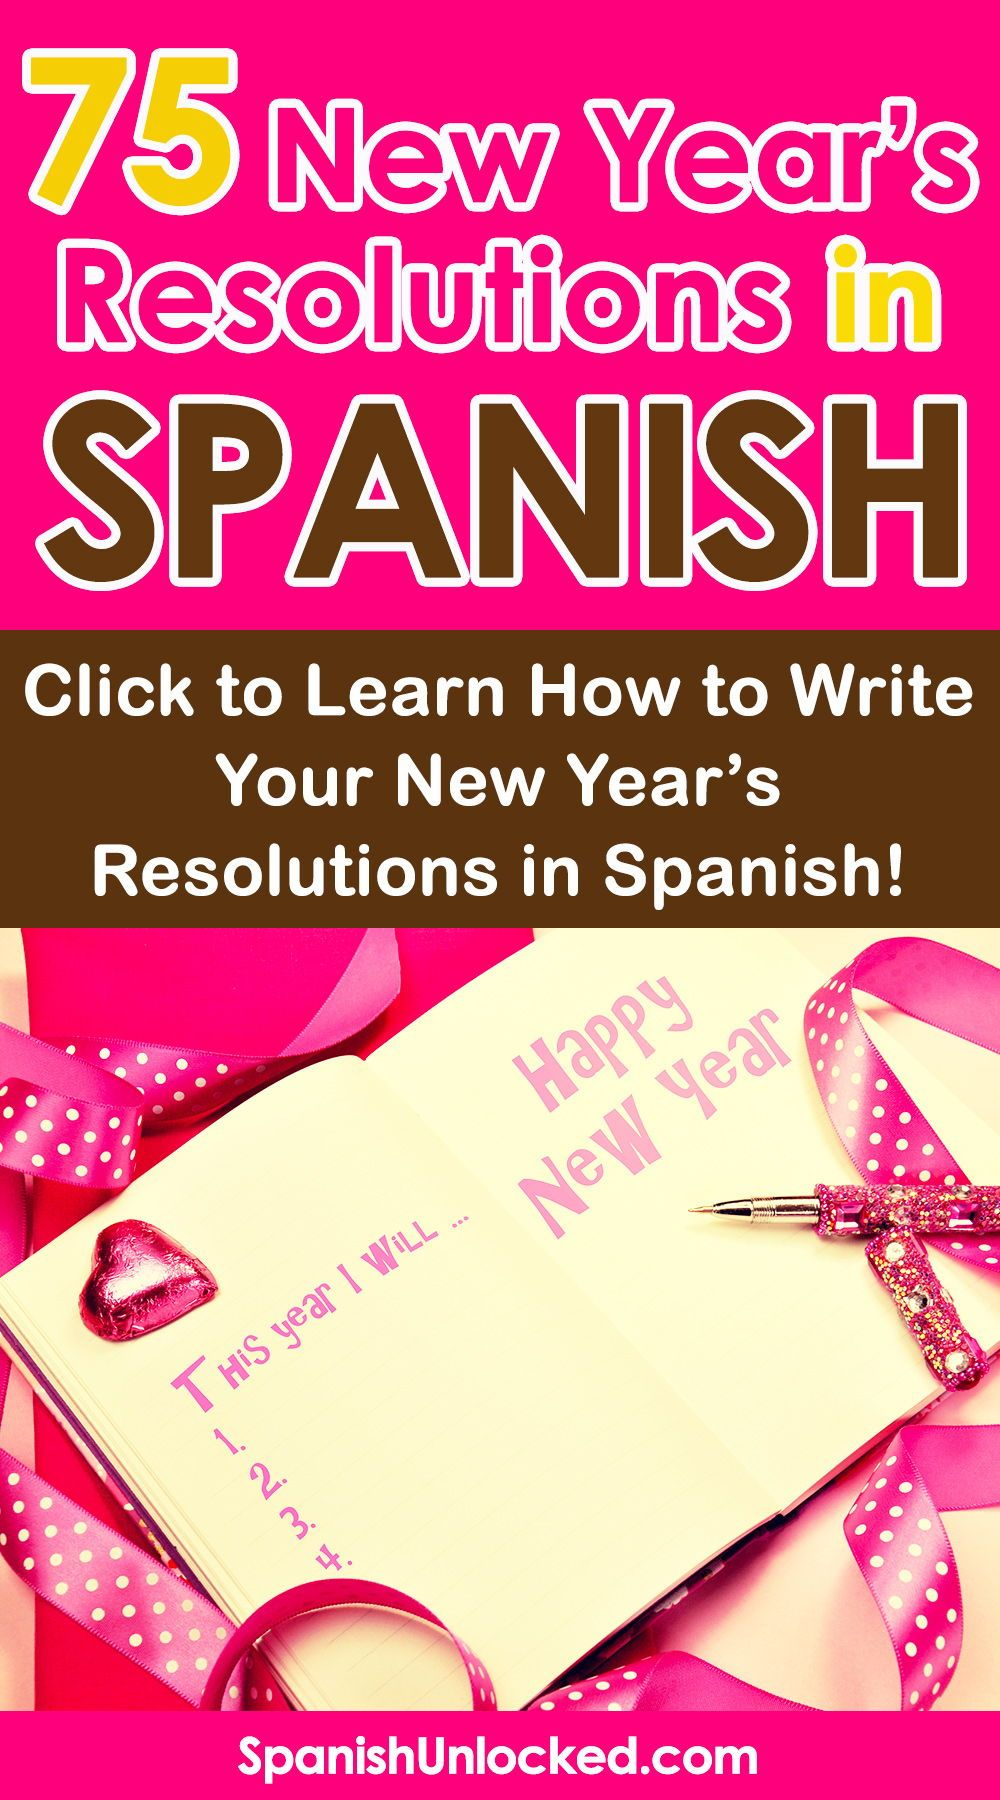 New year resolutions ideas in Spanish List of common New